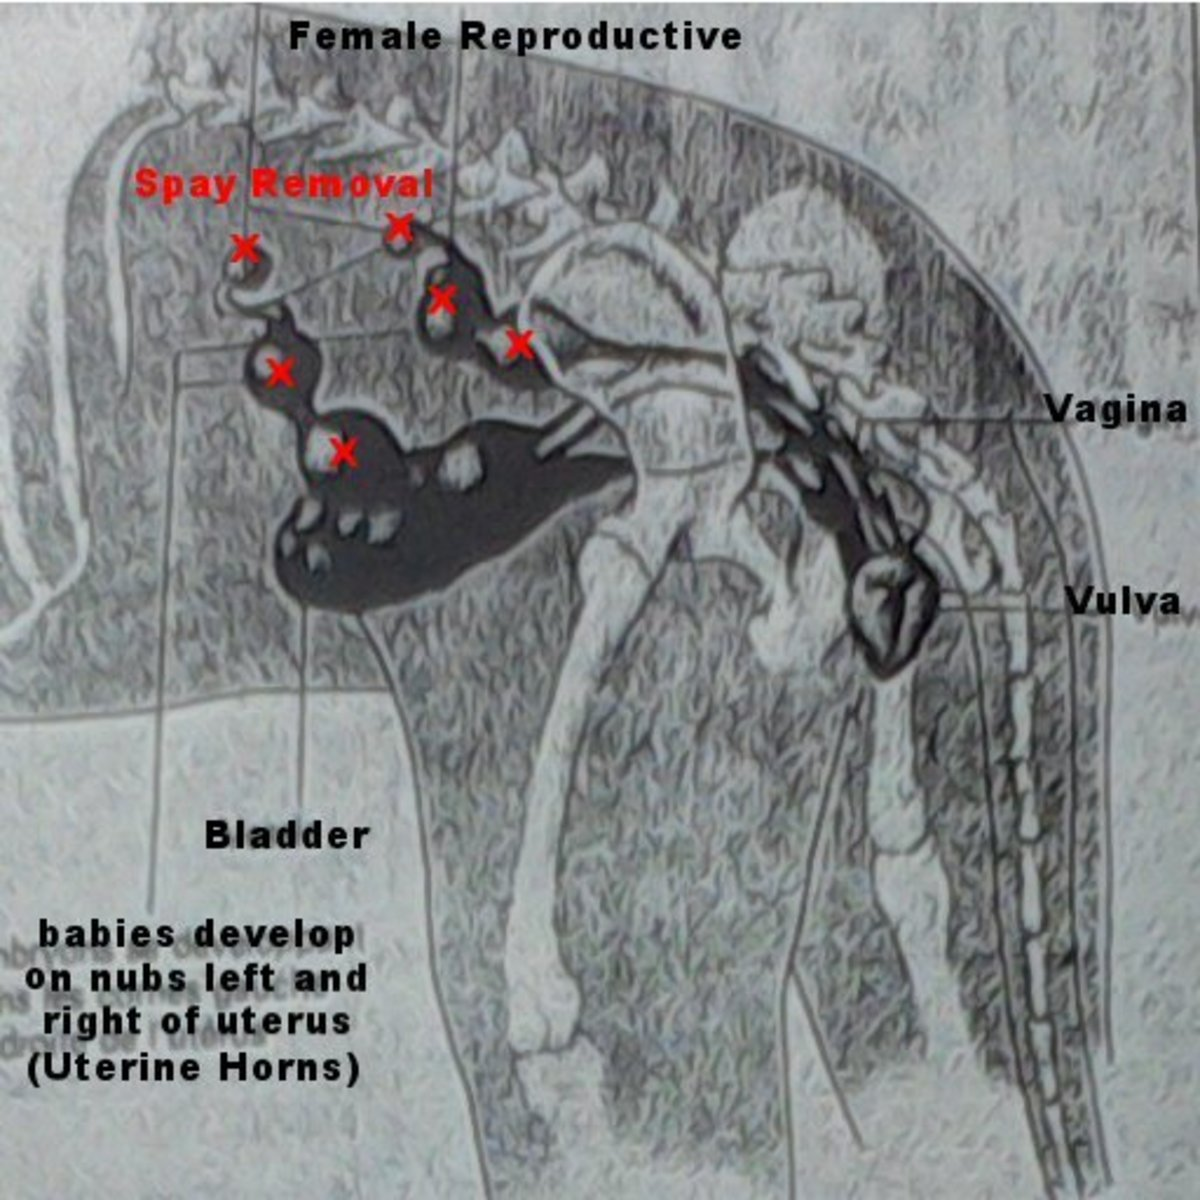 Spaying a cat or dog removes the whole uterine chain